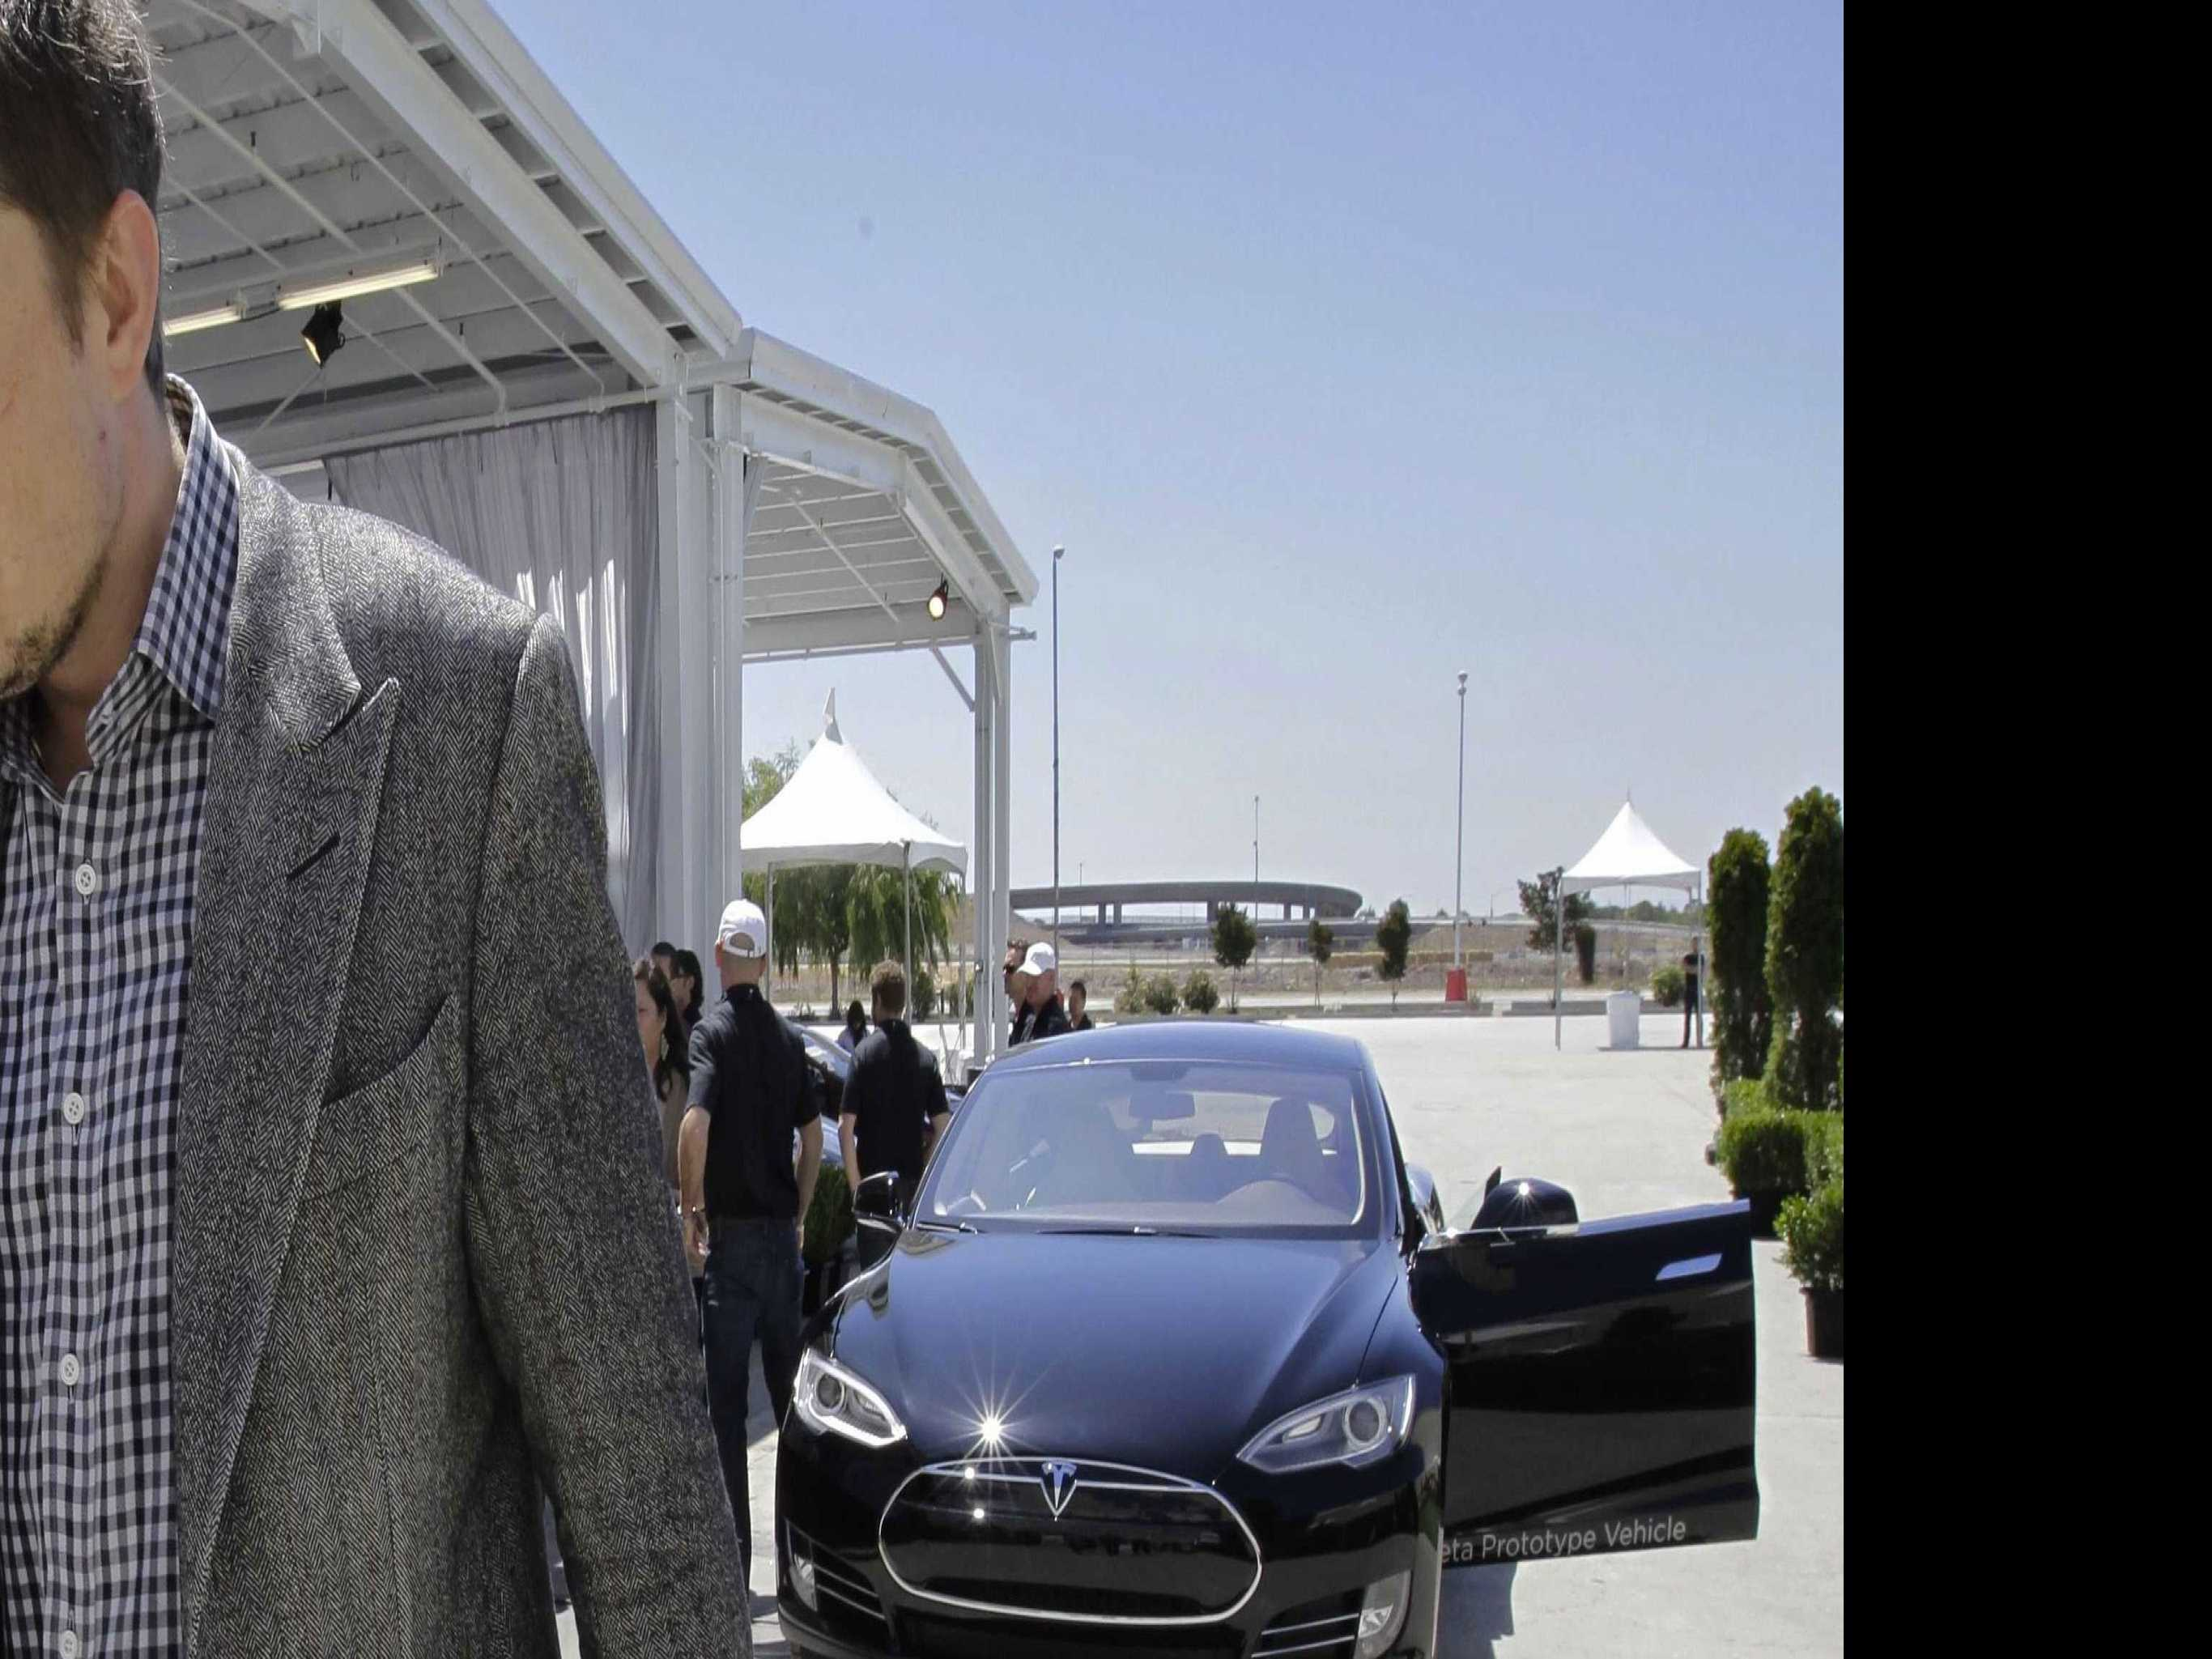 Tesla Faces a Reckoning with CEO Elon Musk's Job in Jeopardy